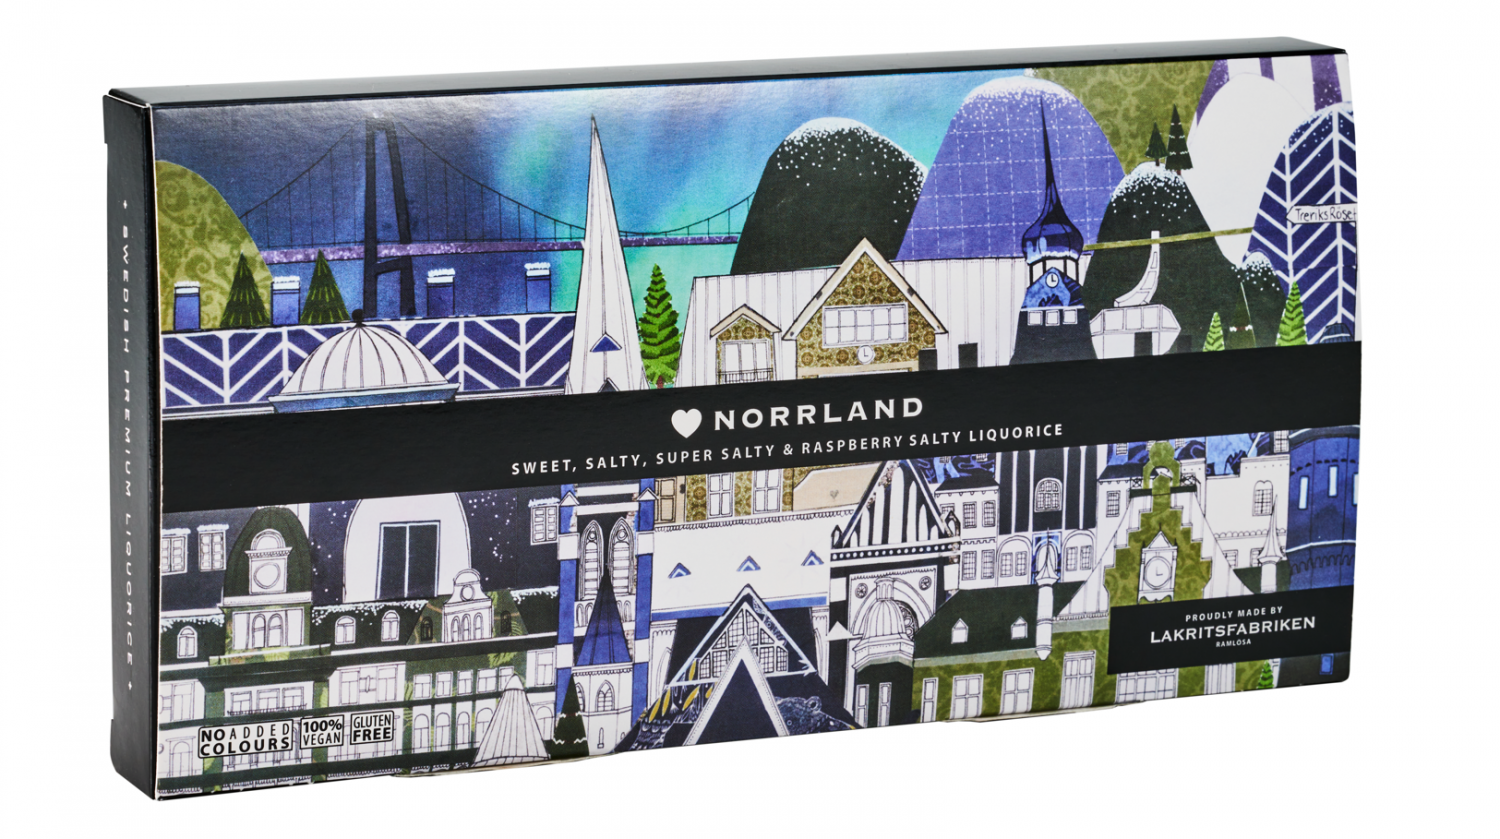 4PACK Norrland